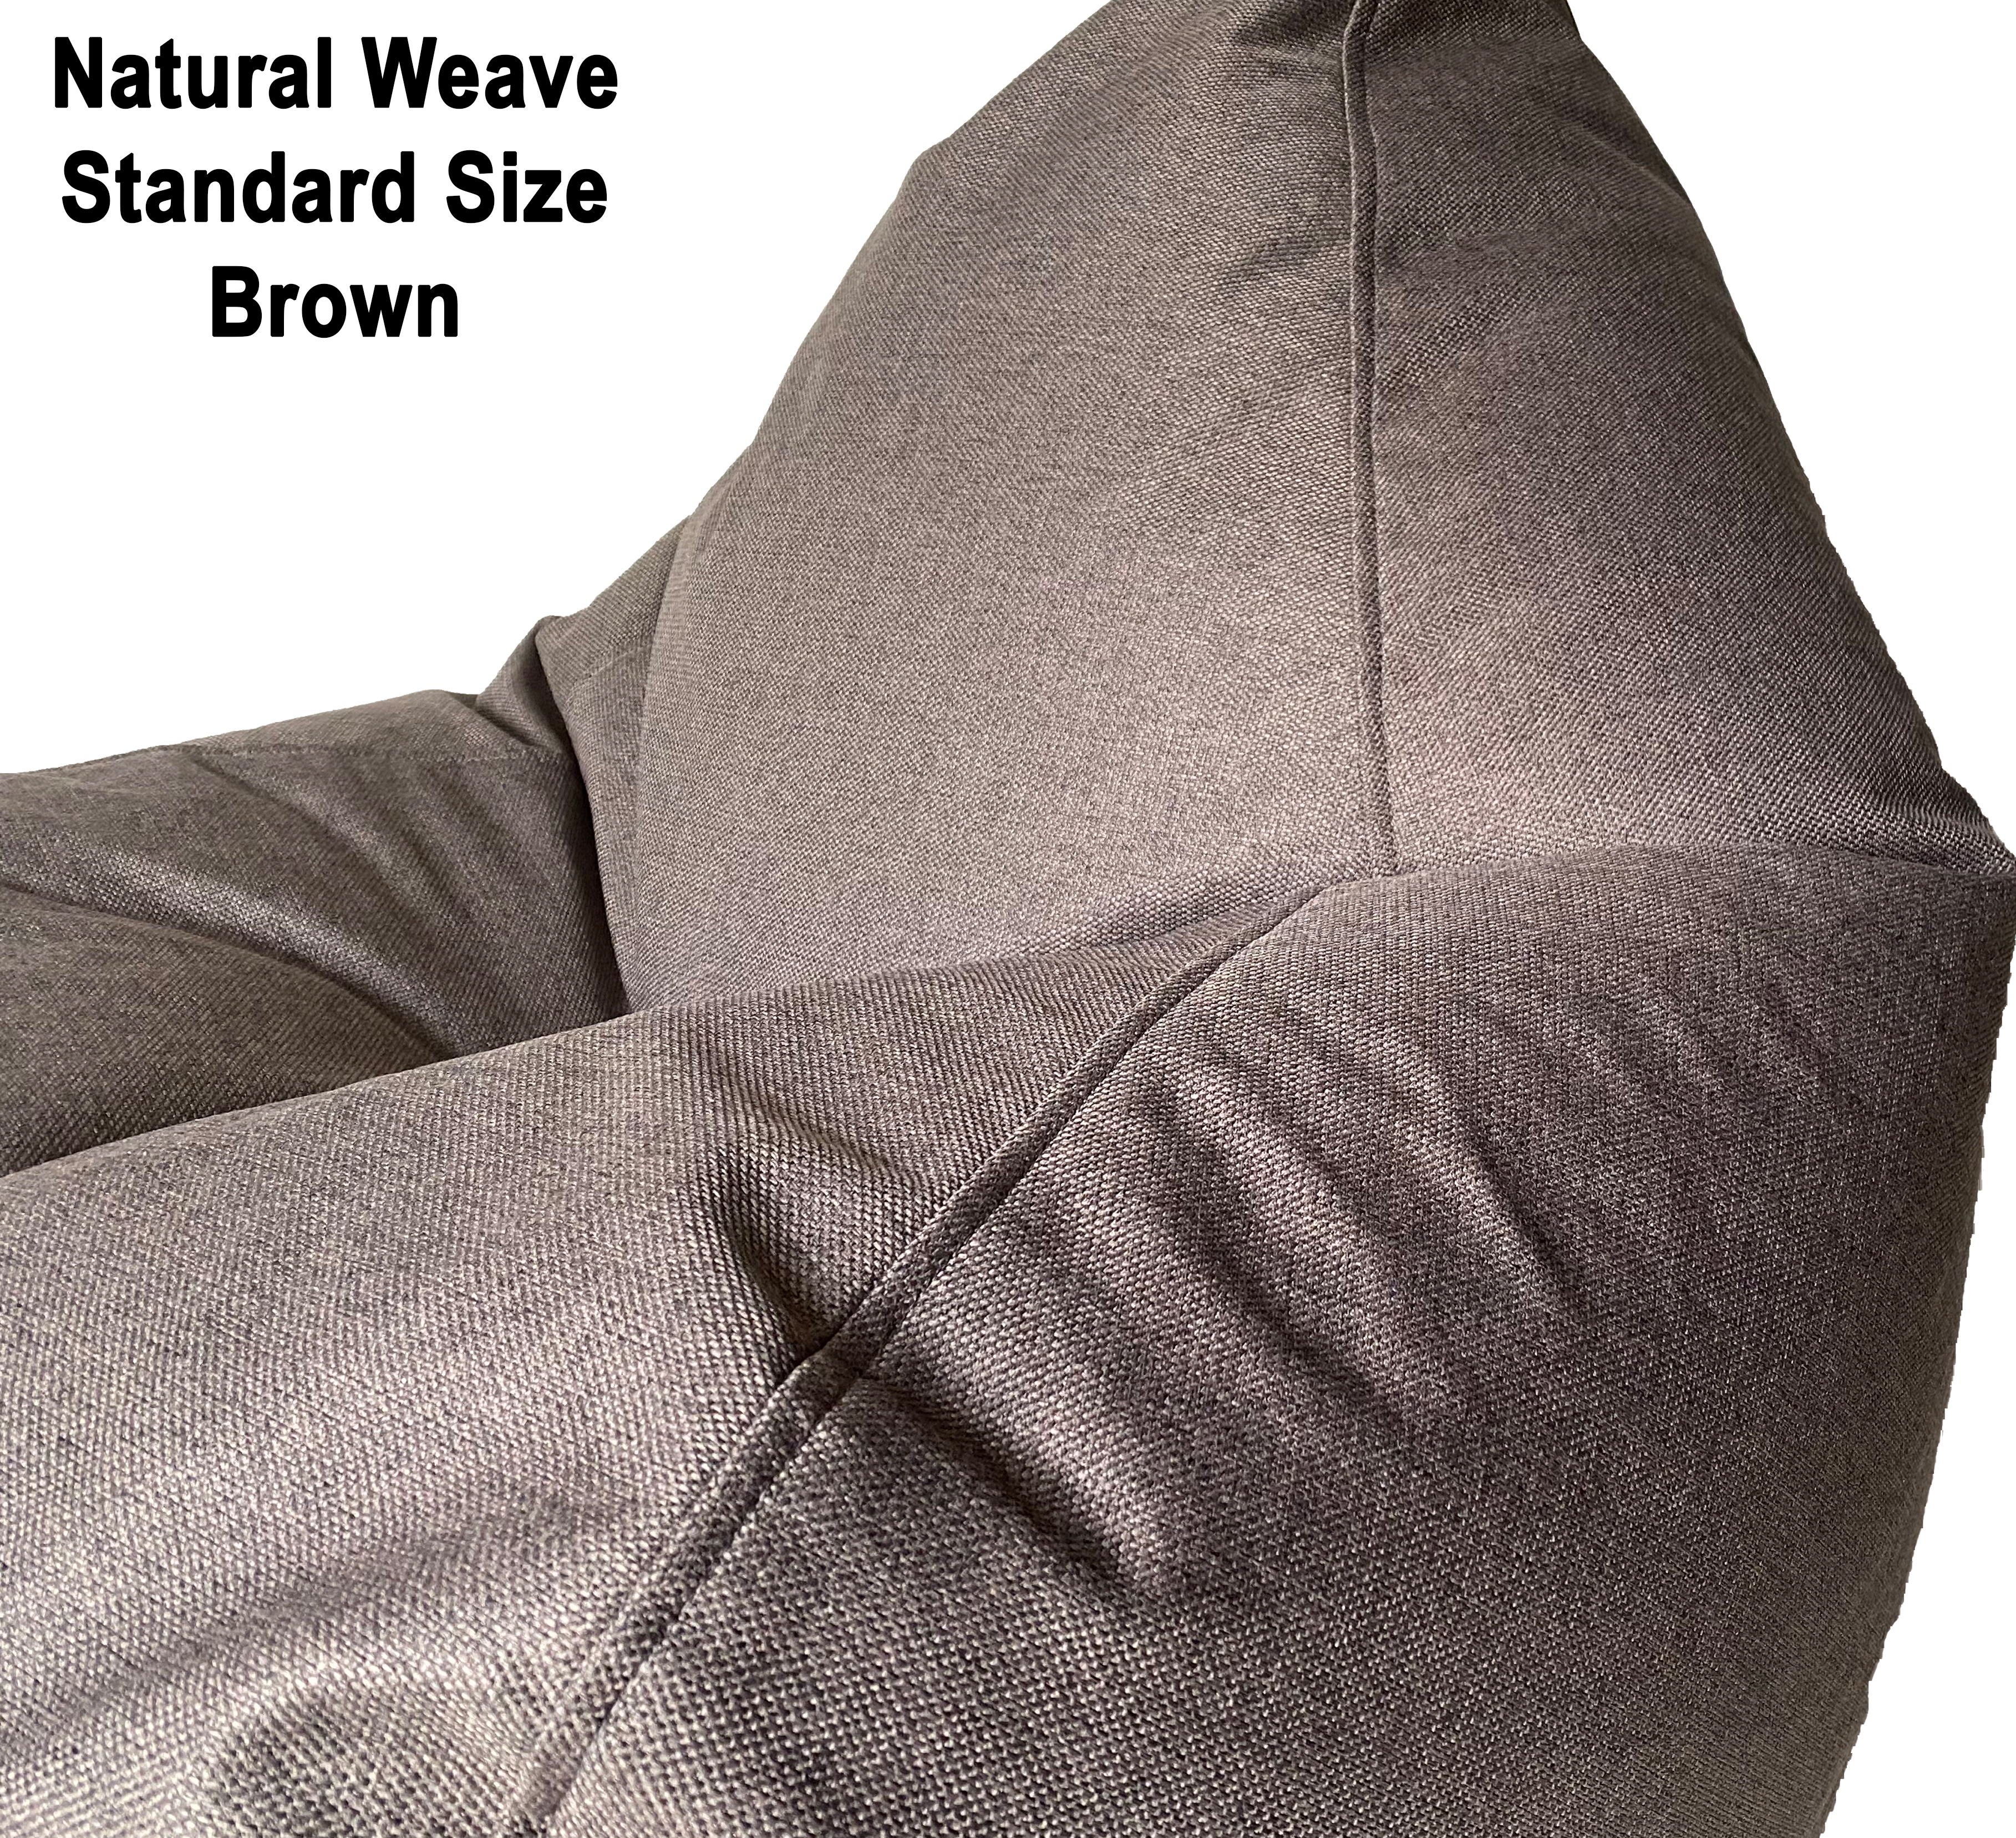 Brown Natural Weave Standard Size